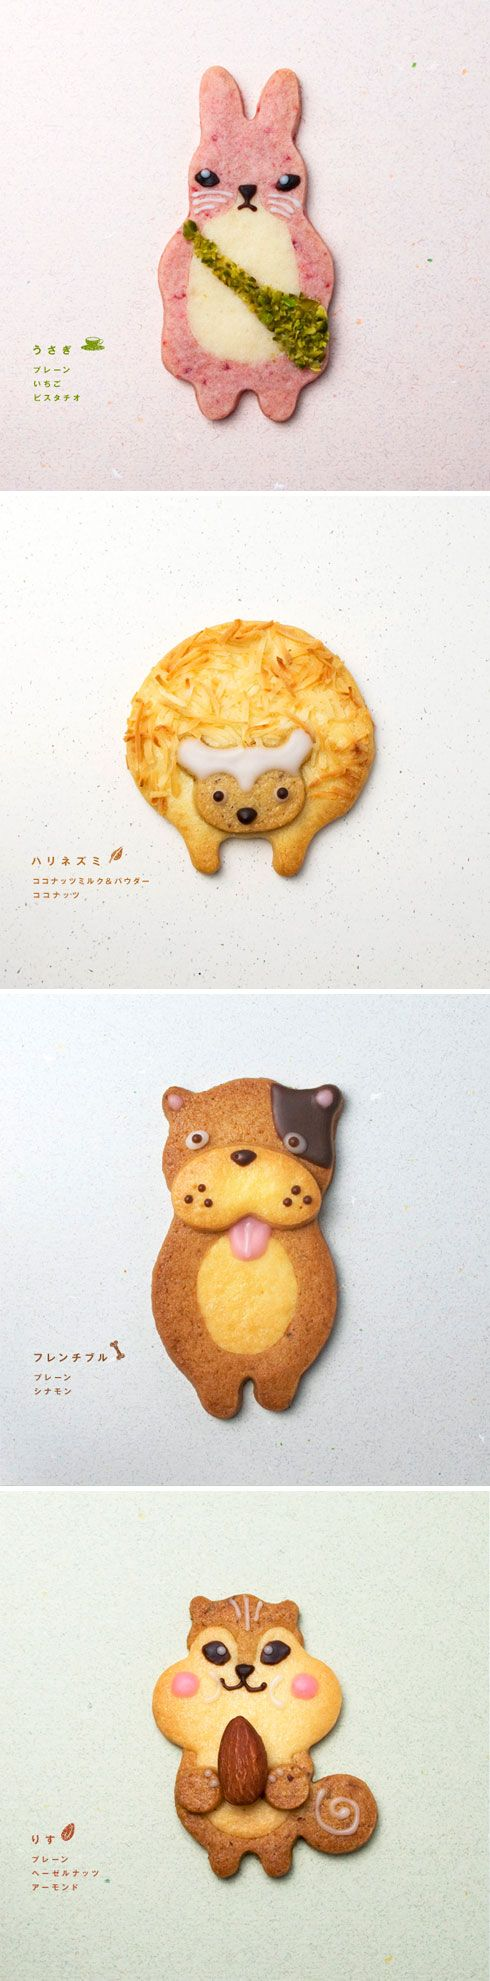 HOW CUTE ARE THESE COOKIES? Adorable! ~~ Houston Foodlovers Book Club